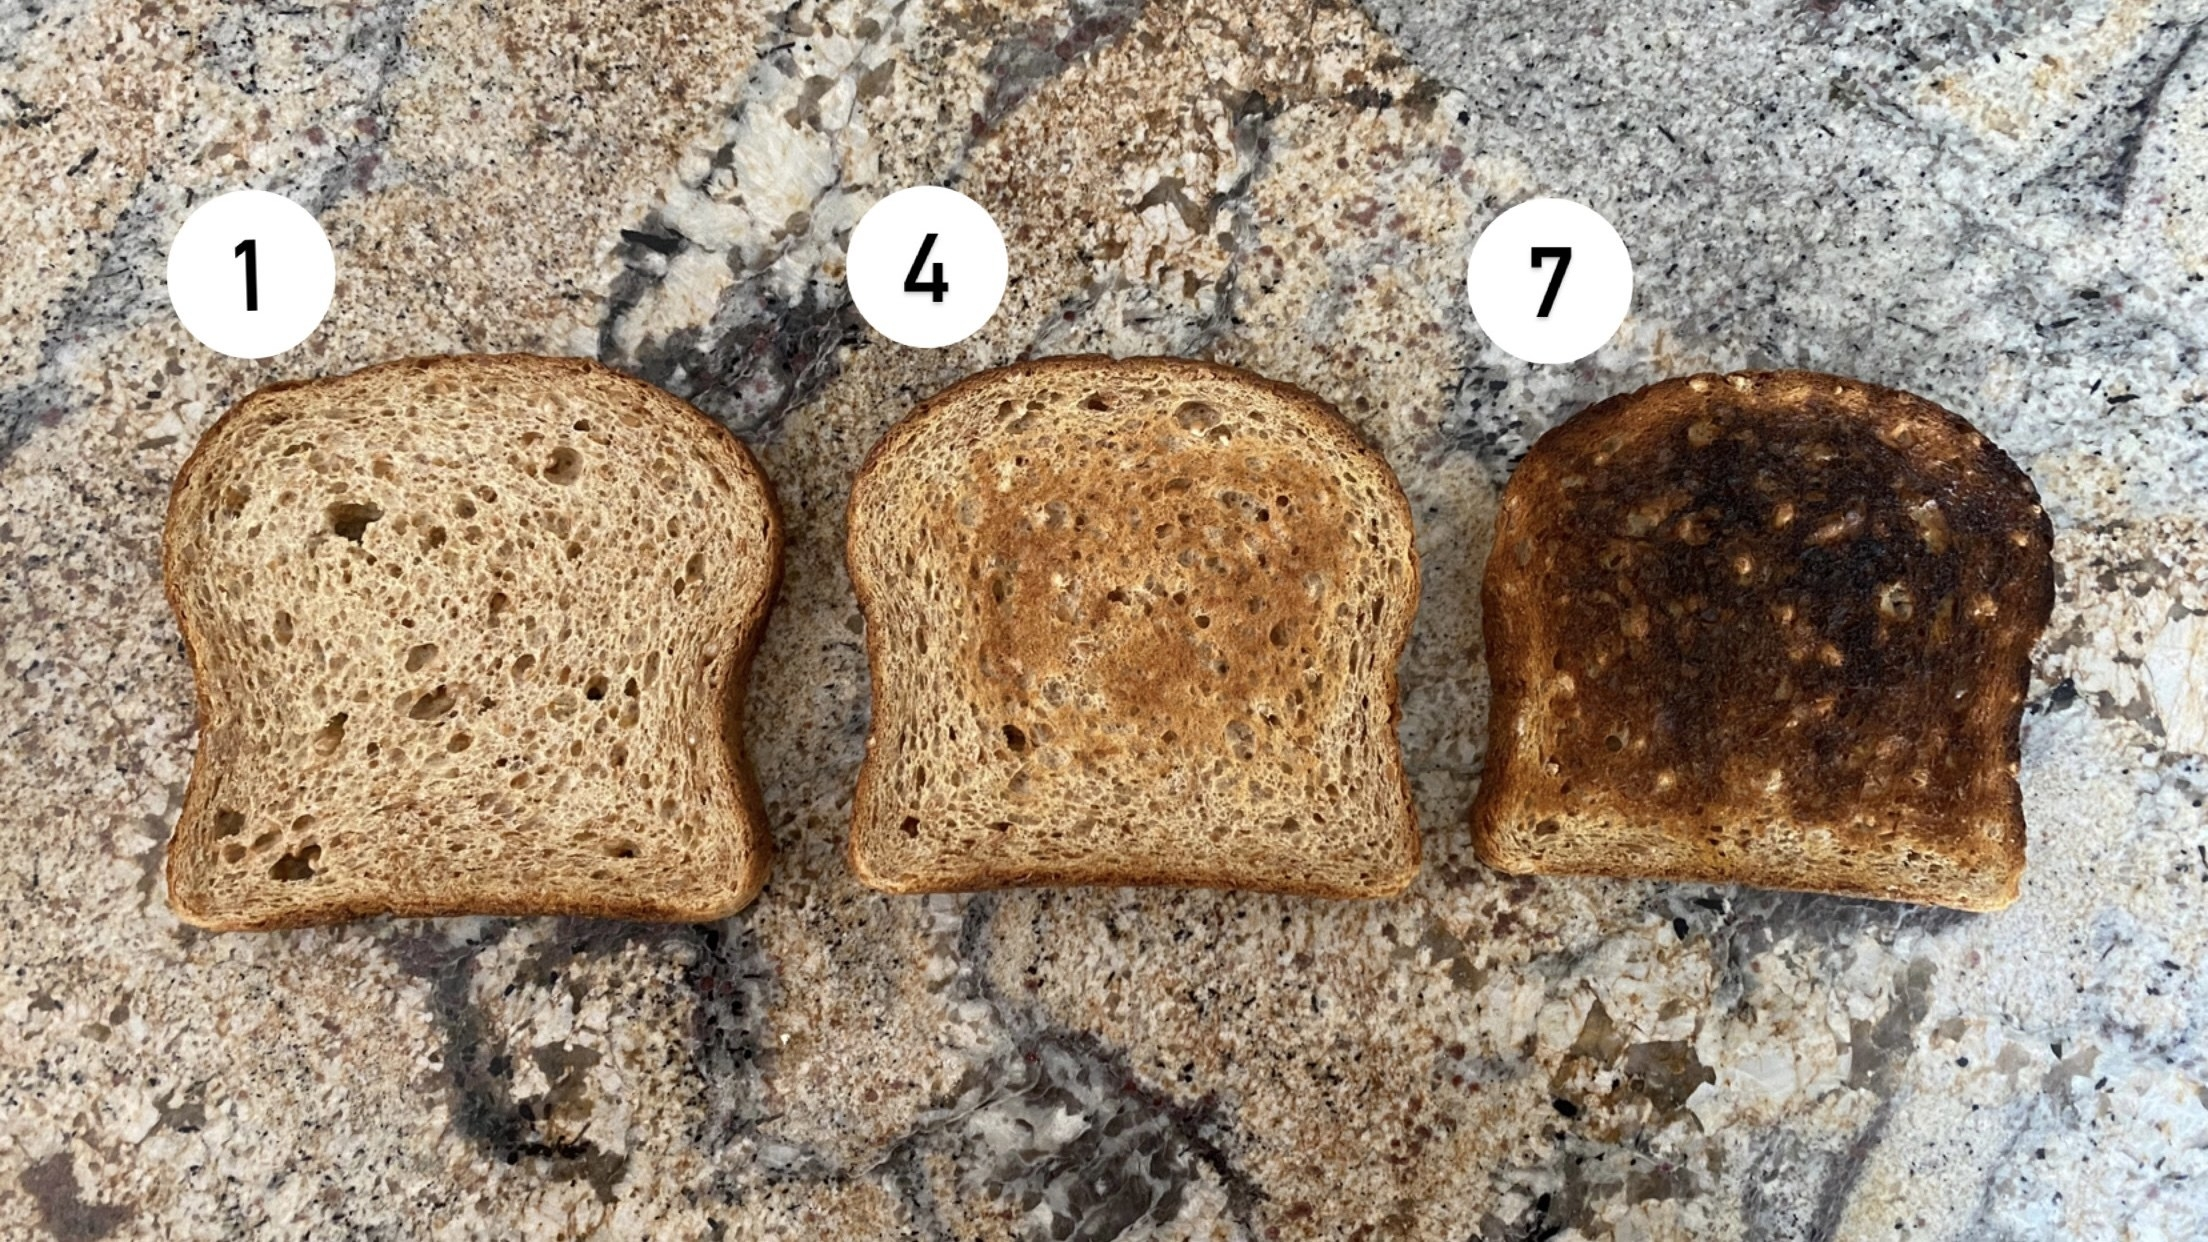 the toast at three different levels of doneness, 1, 4, and 7